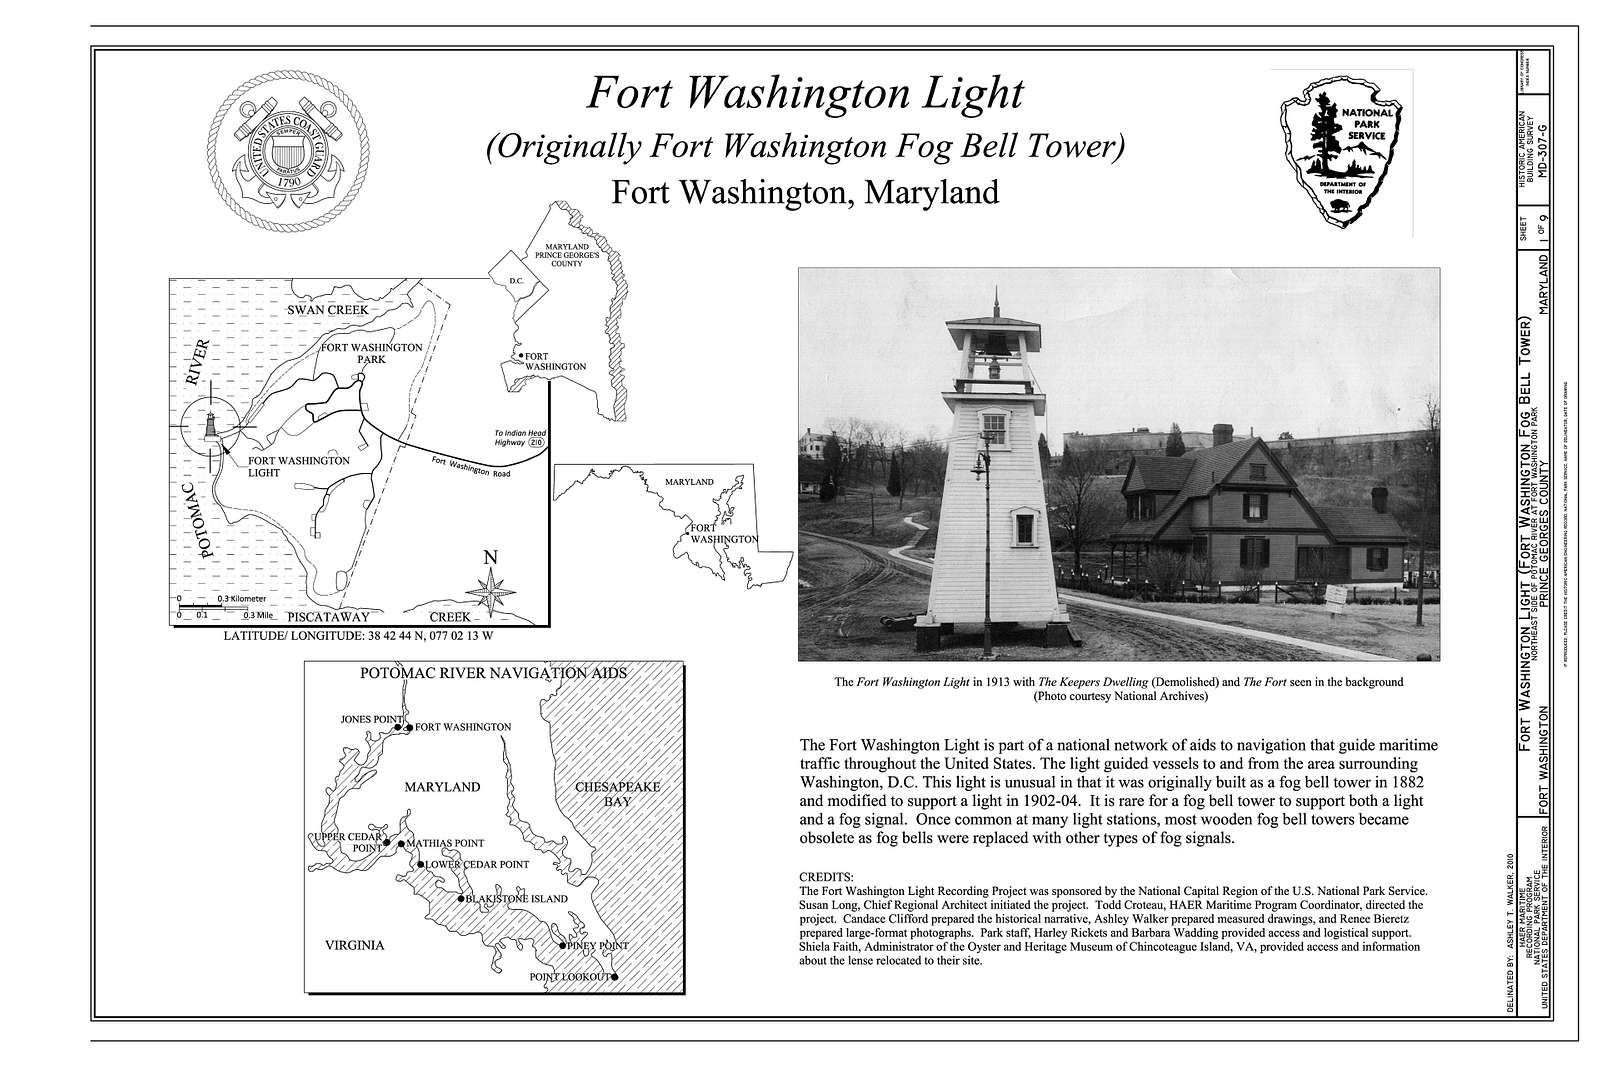 Fort Washington, Fort Washington Light, Northeast side of Potomac River at Fort Washington Park, Fort Washington, Prince George's County, MD